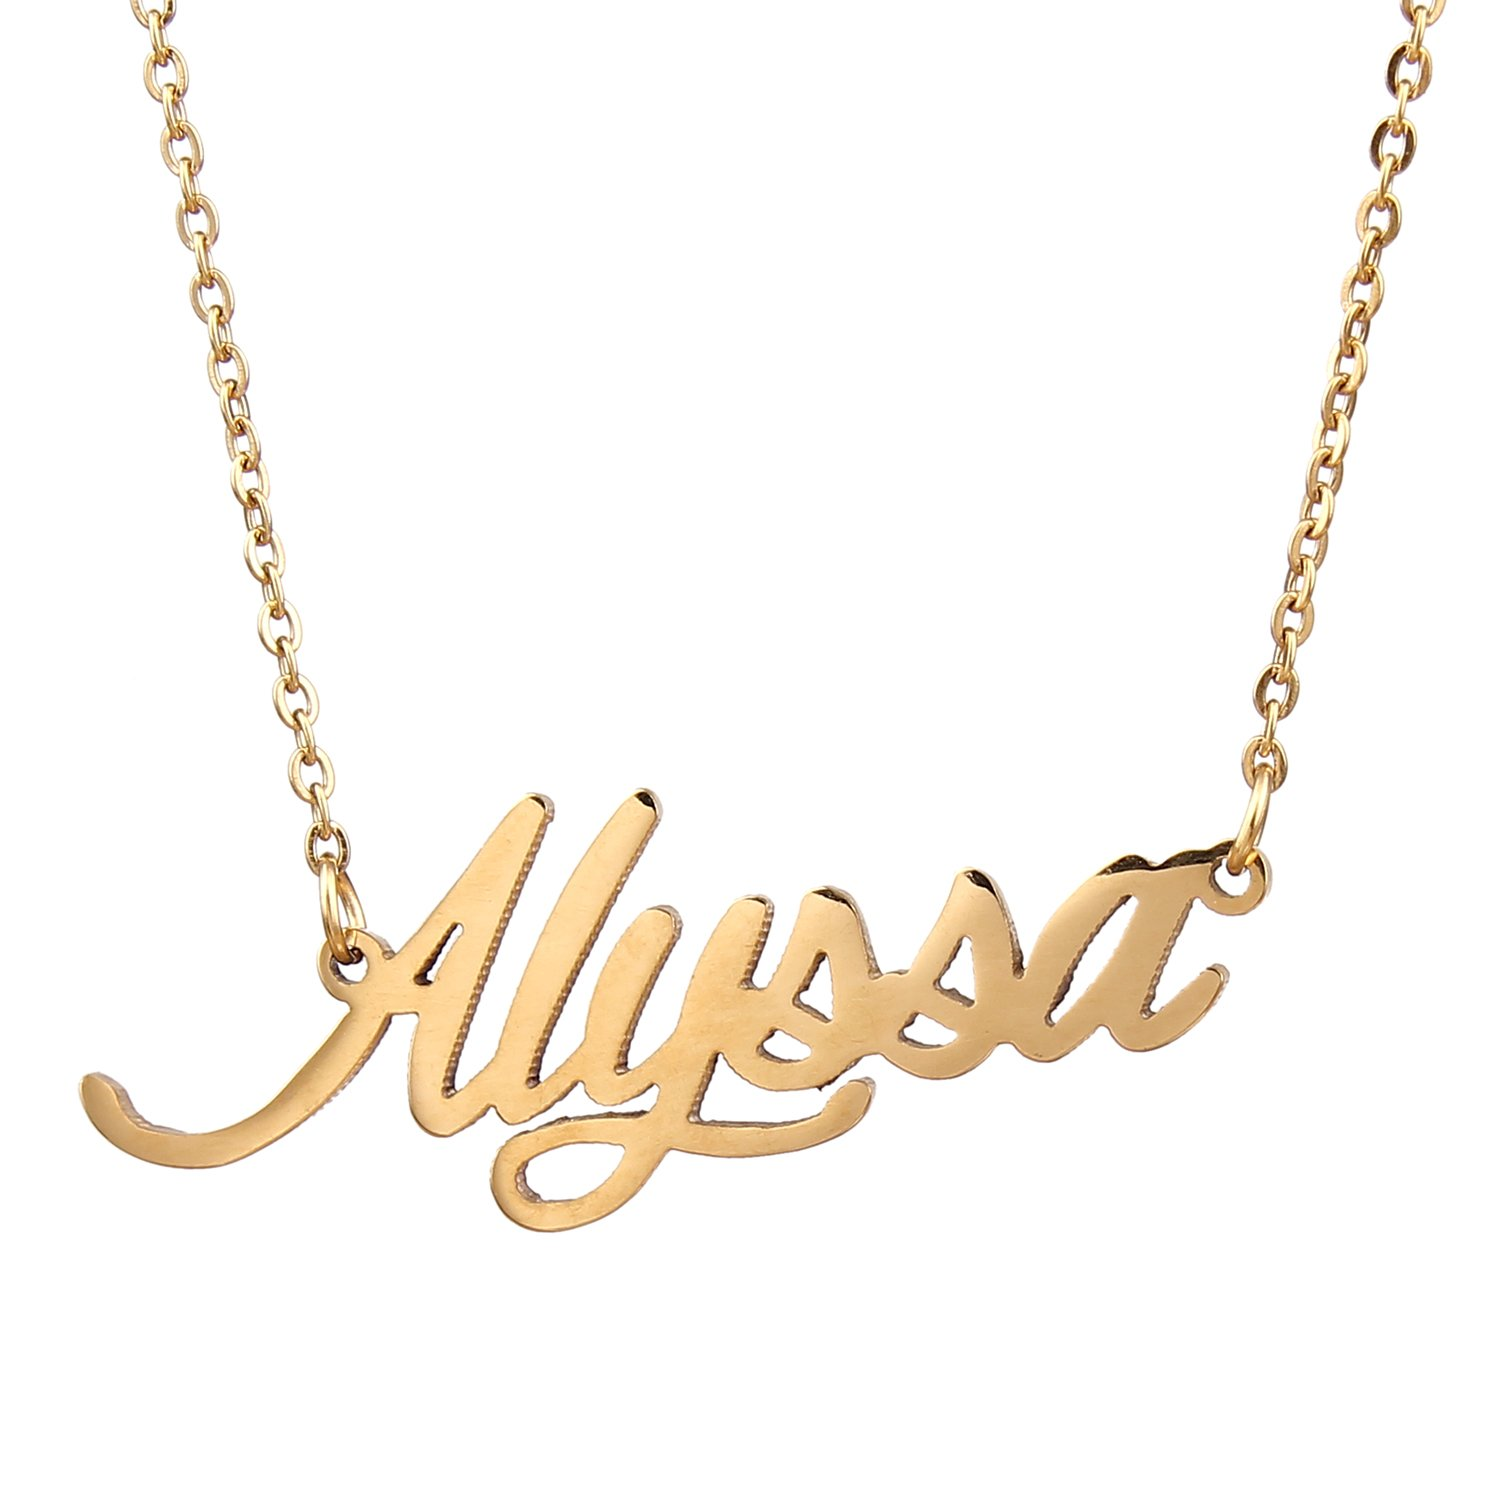 yellow any jewellery gold buy personalized en ebay us ru necklace name plated